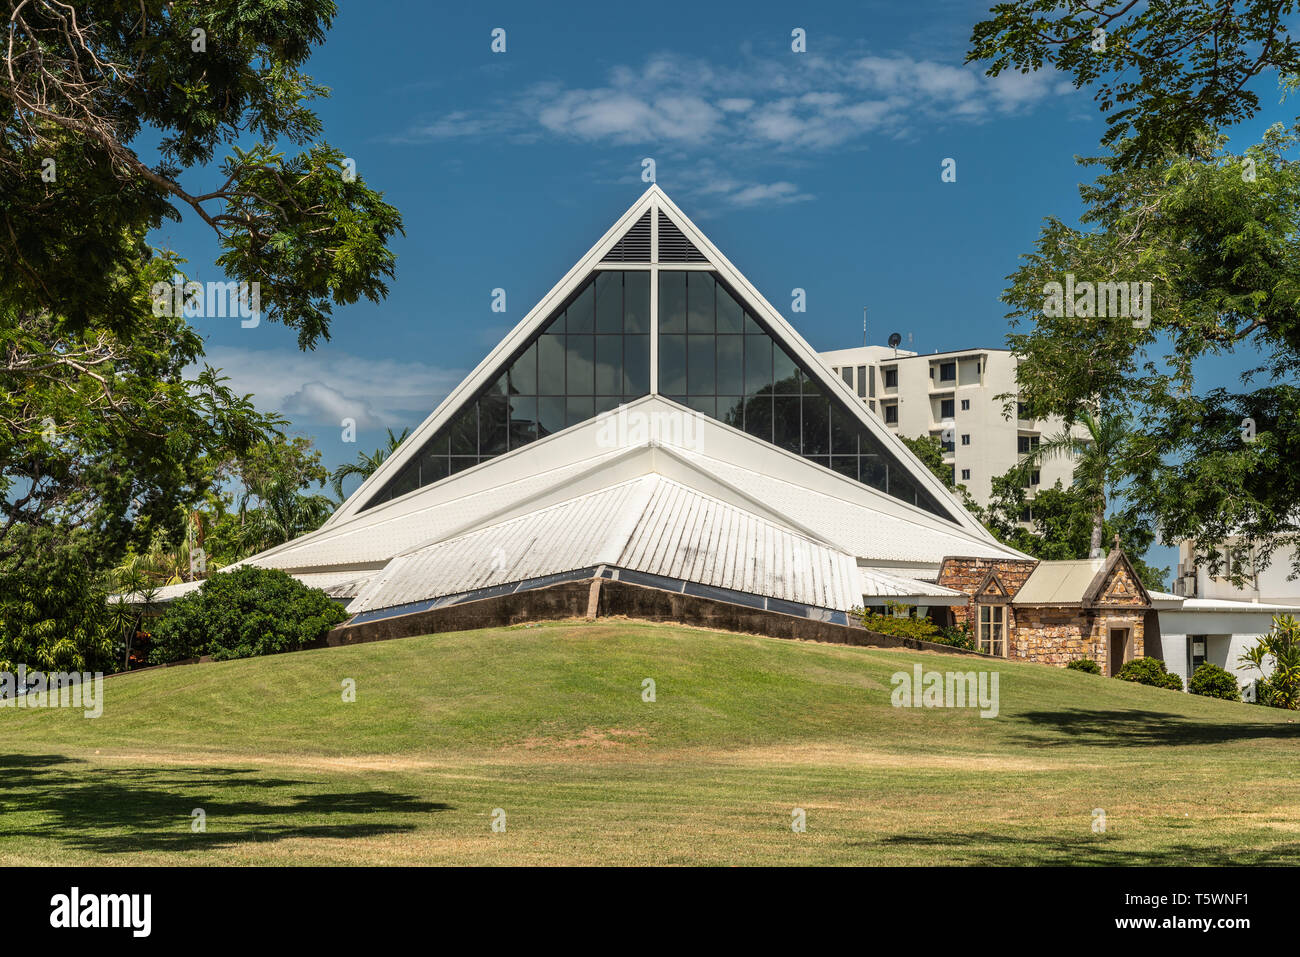 Darwin Australia February 22 2019 White Modern Pyramid Shaped Building Of Christ Church Anglican Cathedral Set In Green Park Under Blue Sky Stock Photo Alamy